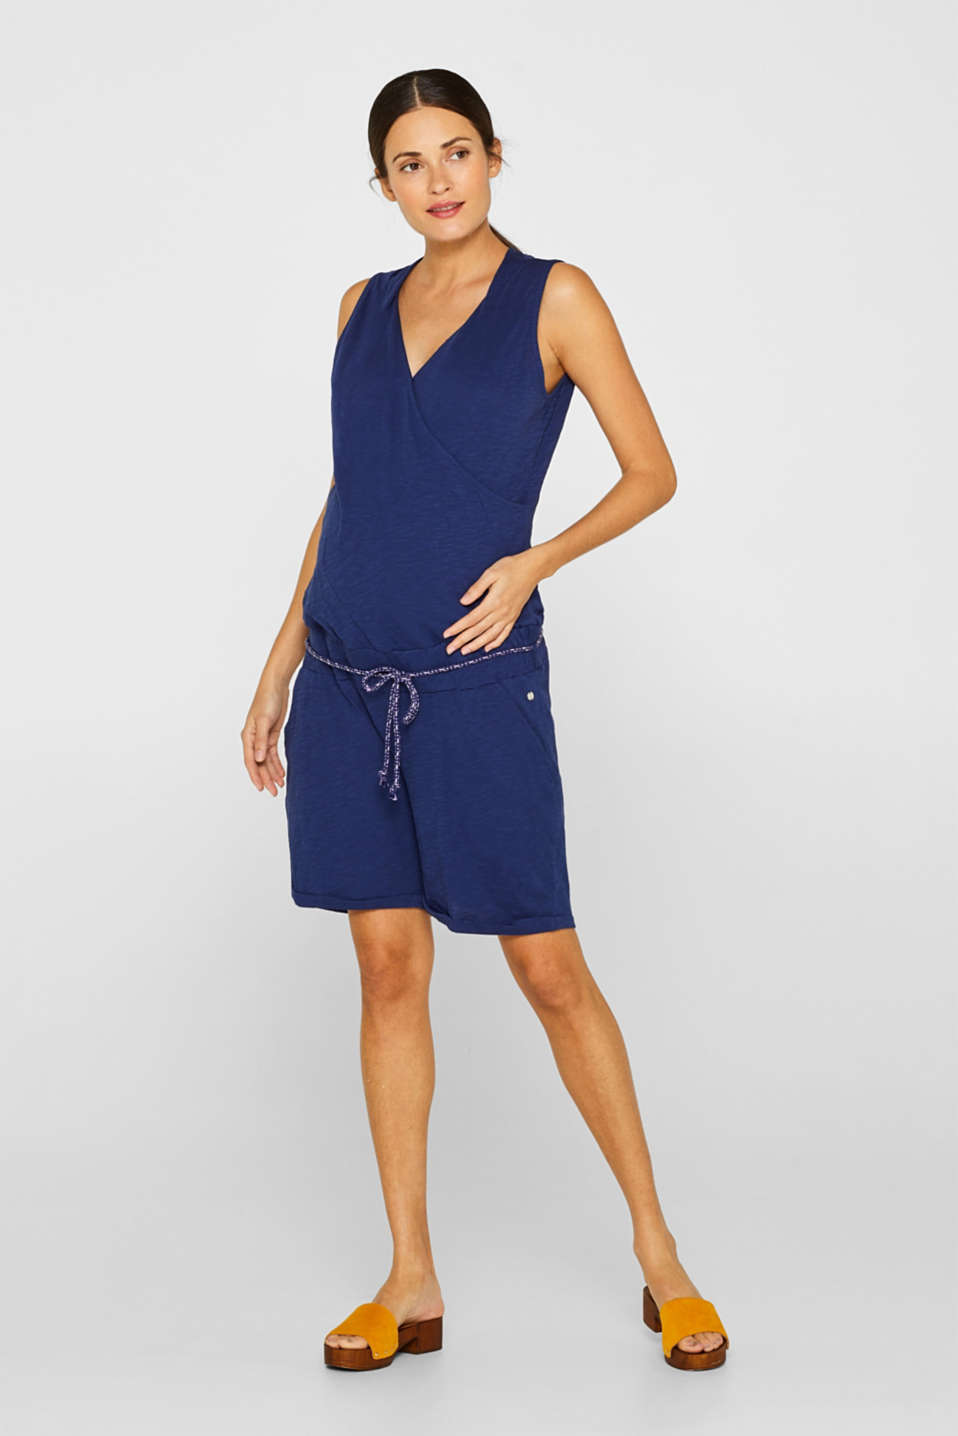 Esprit - Jersey jumpsuit with an under-bump waistband, 100% cotton